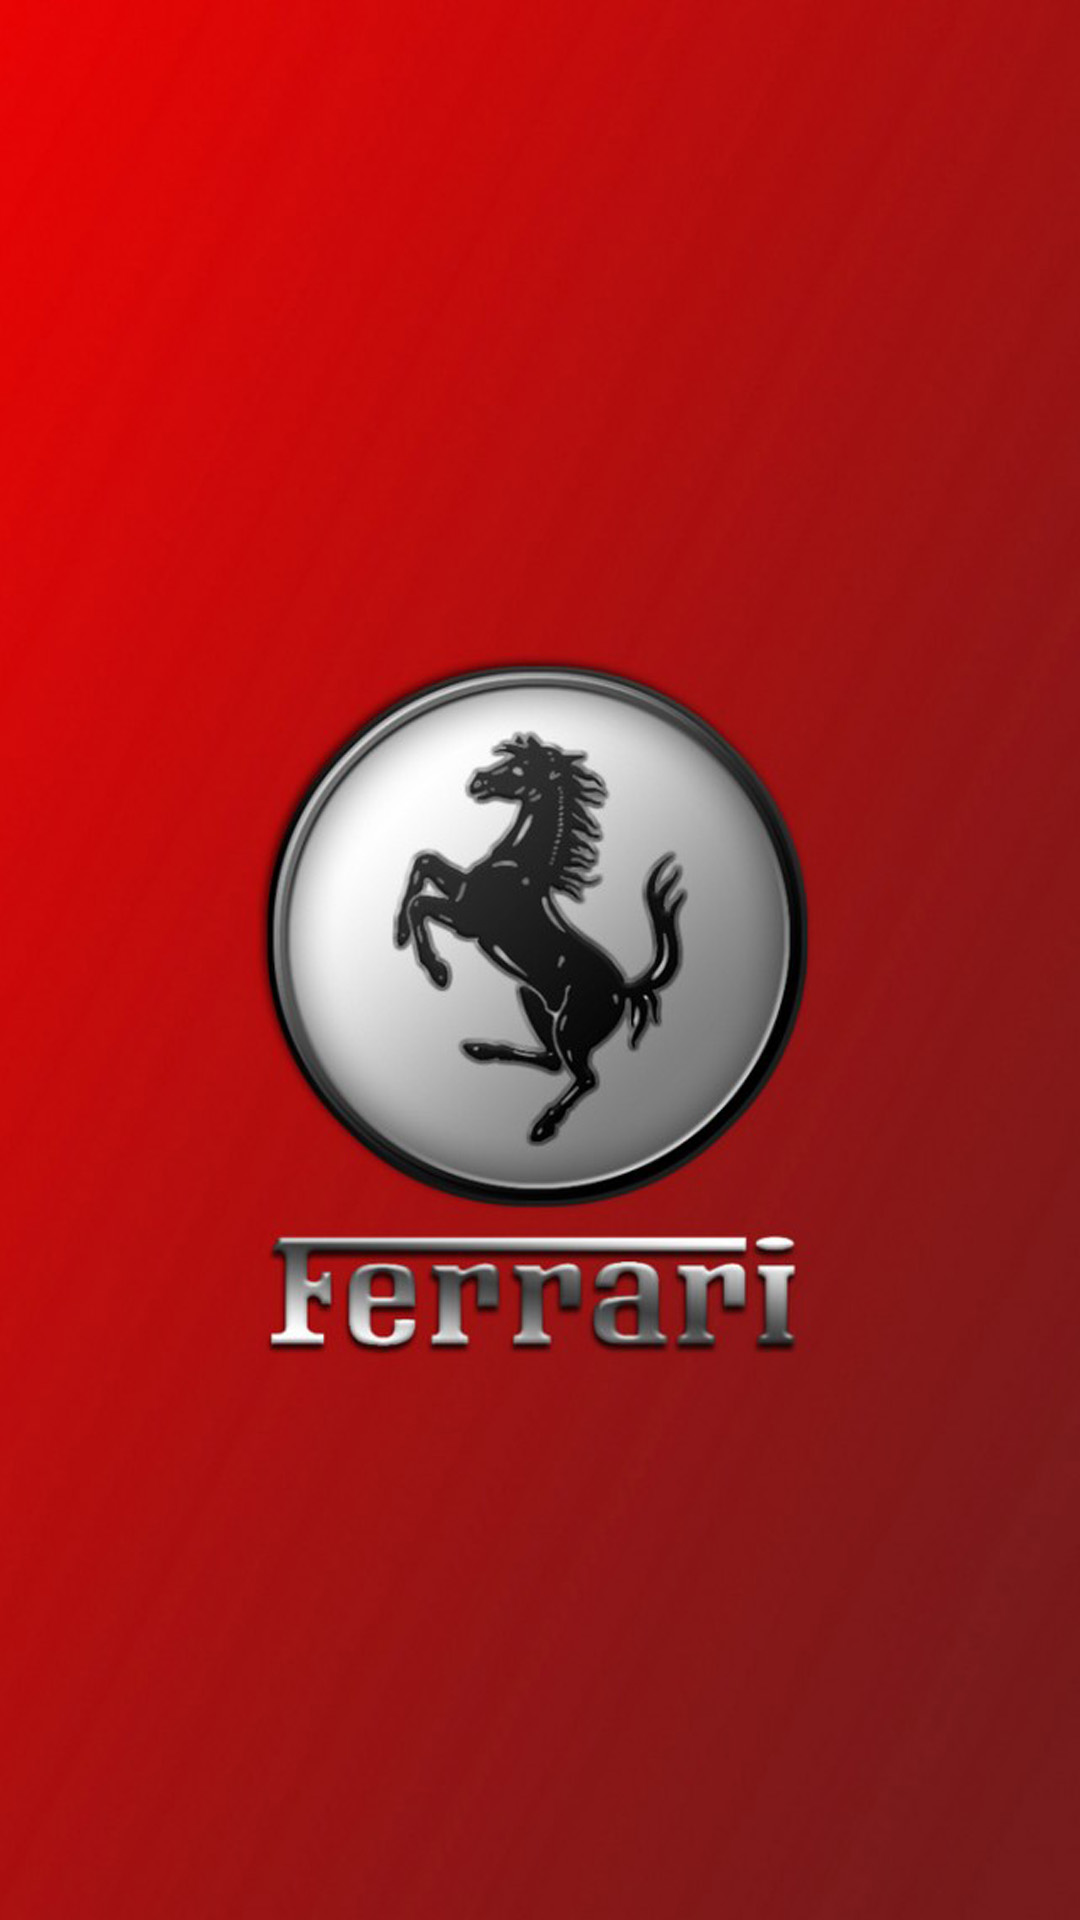 Ferrari Car Symbol Wallpaper Ferrari Iphone Wallpapers Pixelstalk Net